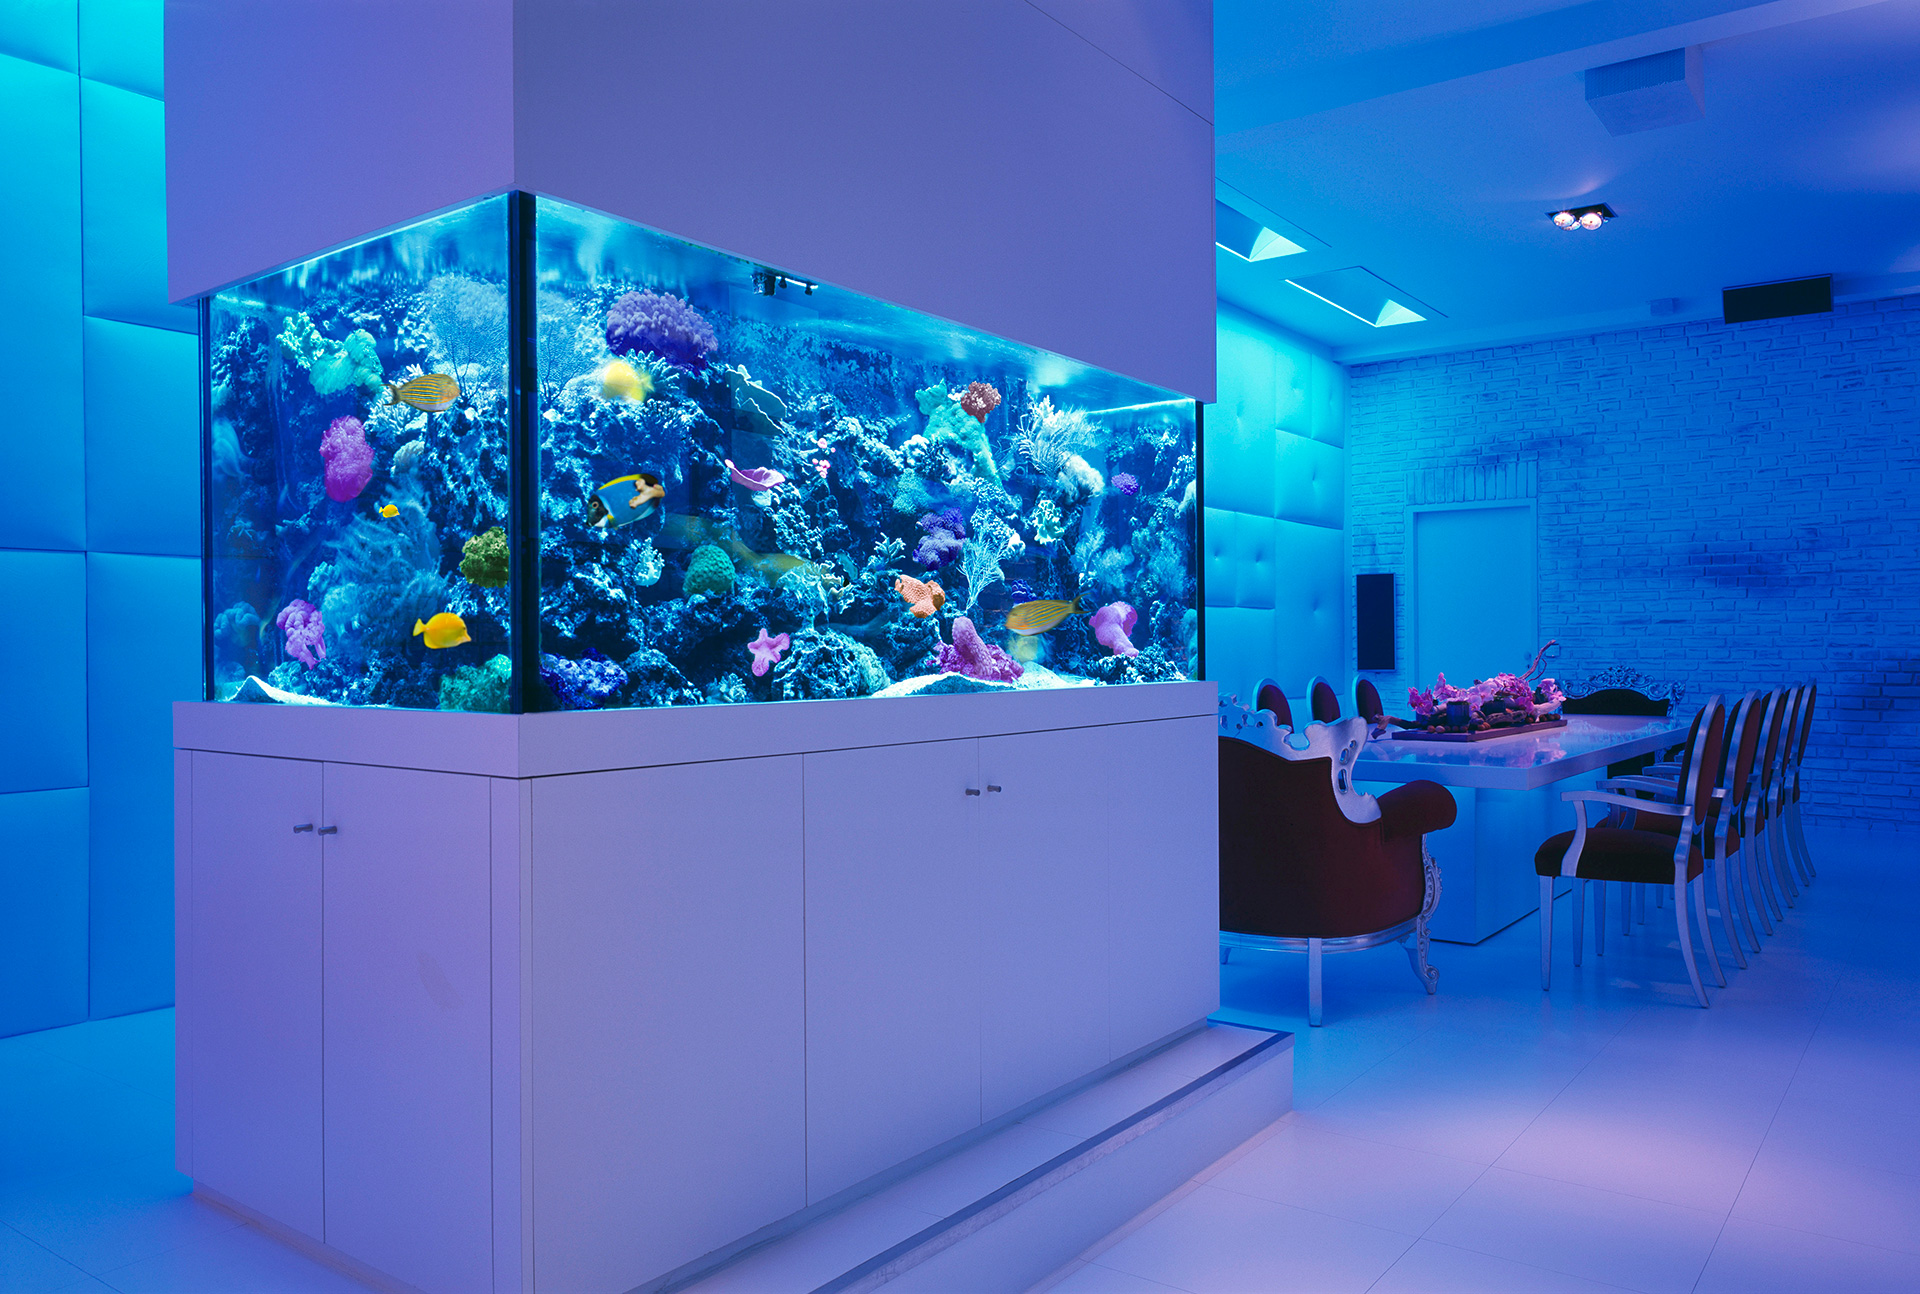 Fish aquarium for sale in karachi - Fish Tank In The Floor View Project Fish Aquarium Karachi